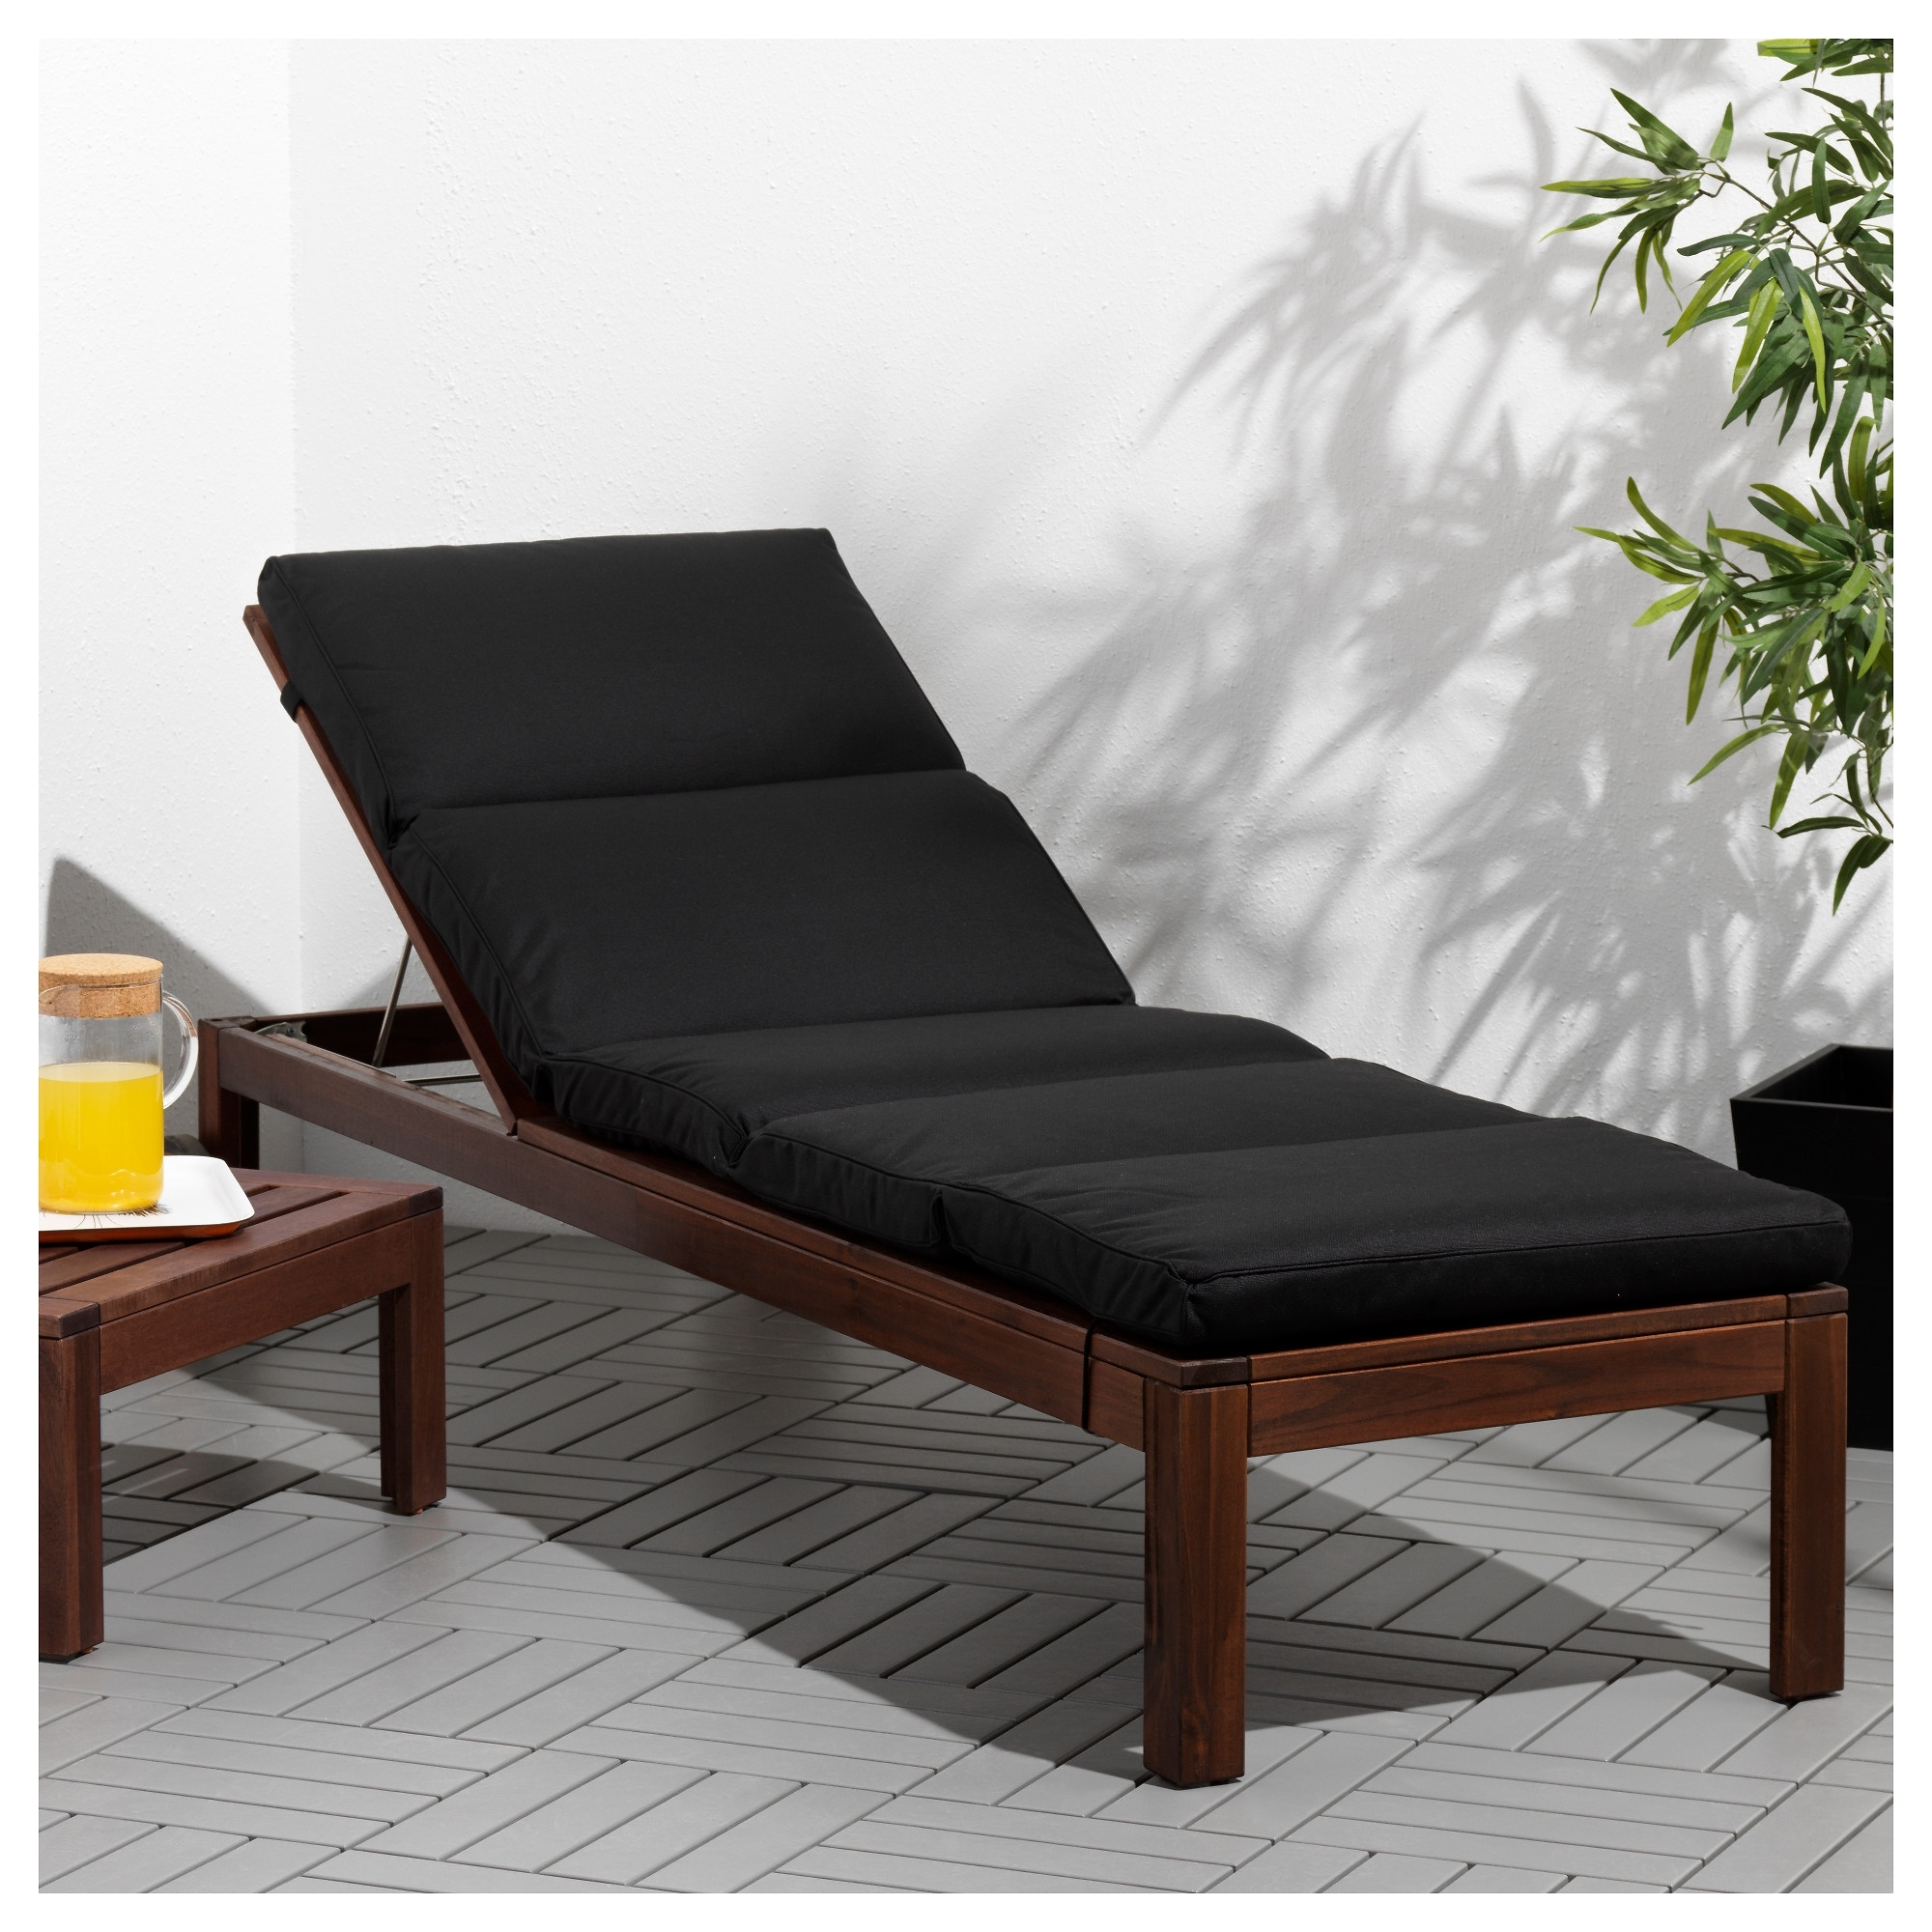 Preferred Web Chaise Lounge Lawn Chairs Intended For Outdoor : Patio Furniture Lounge Lounge Chairs For Bedroom Plastic (View 9 of 15)